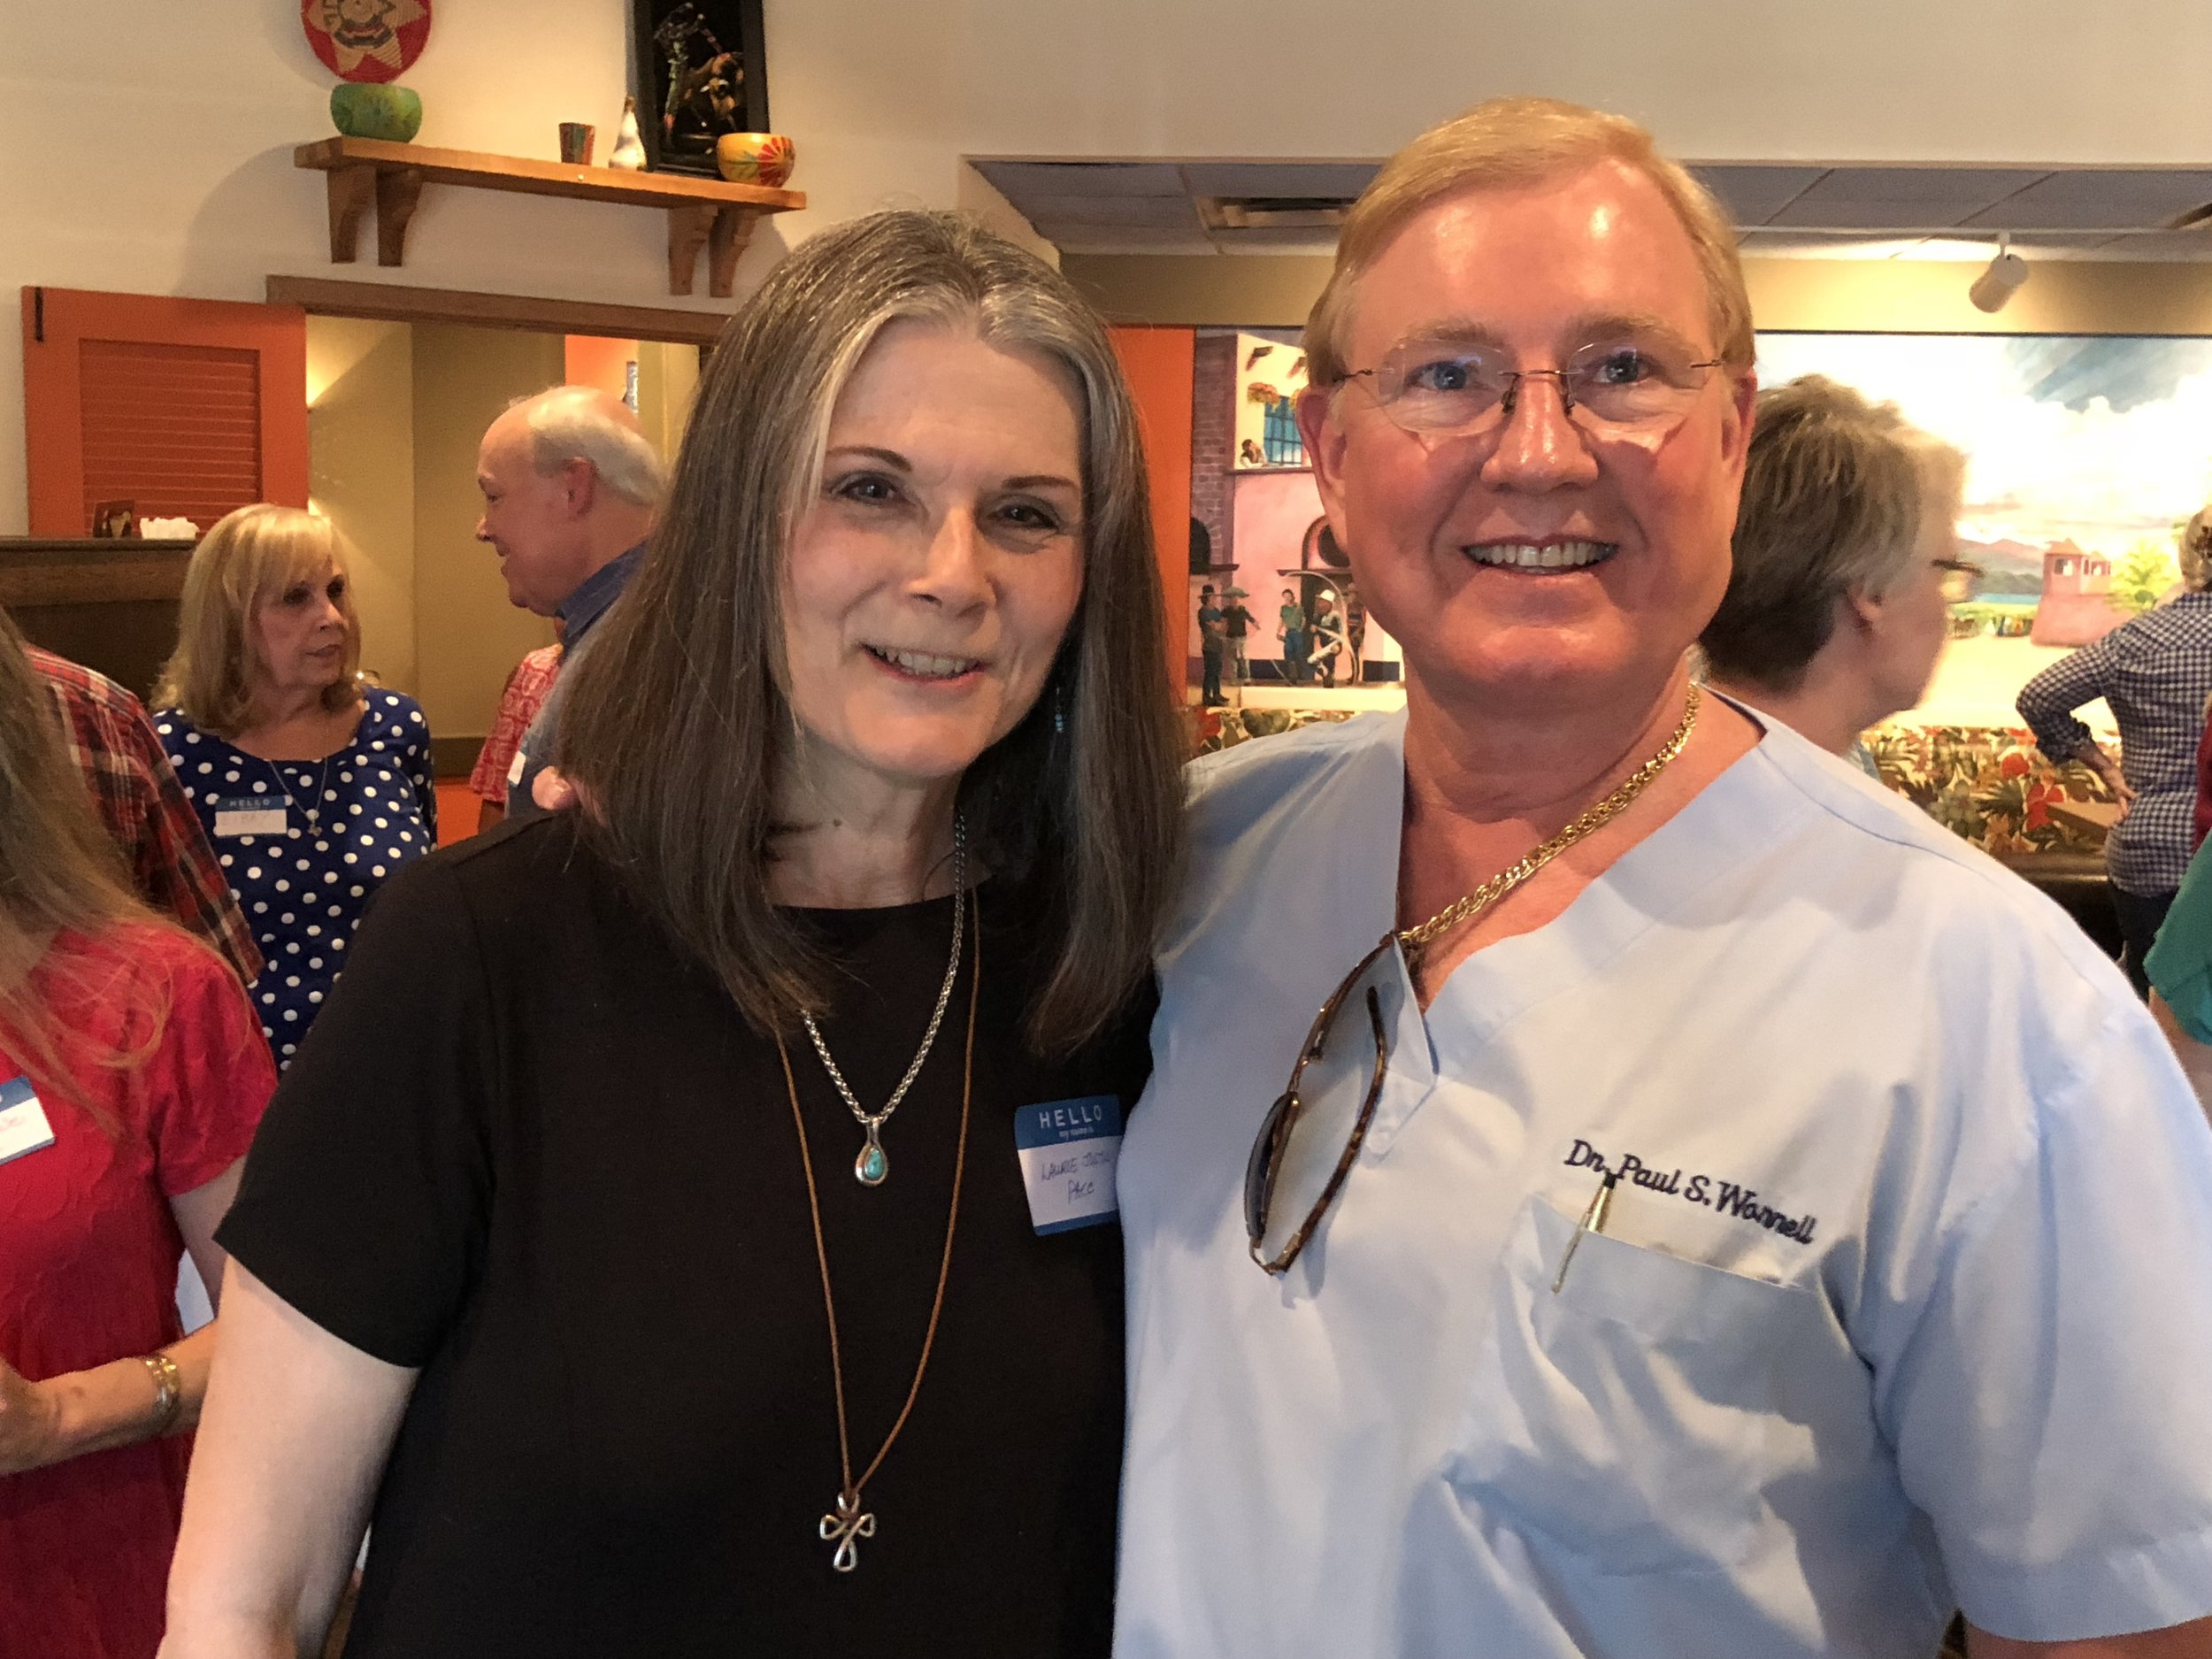 Laurie Justus Pace and Paul Stephen Worrell